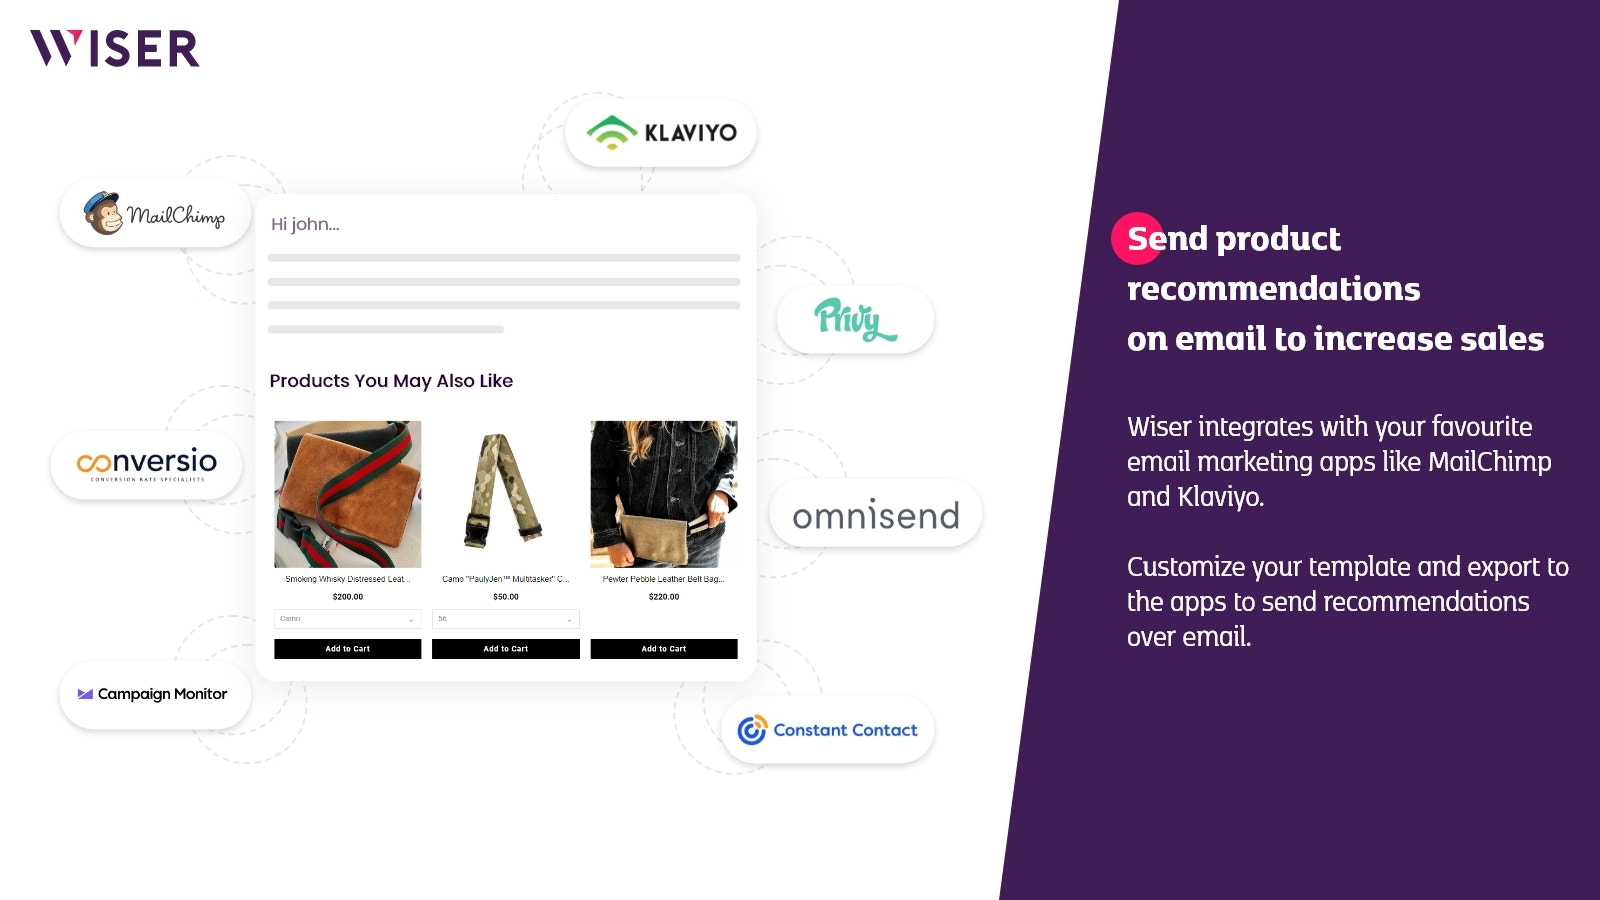 Email Recommendations Shopify by Wiser app